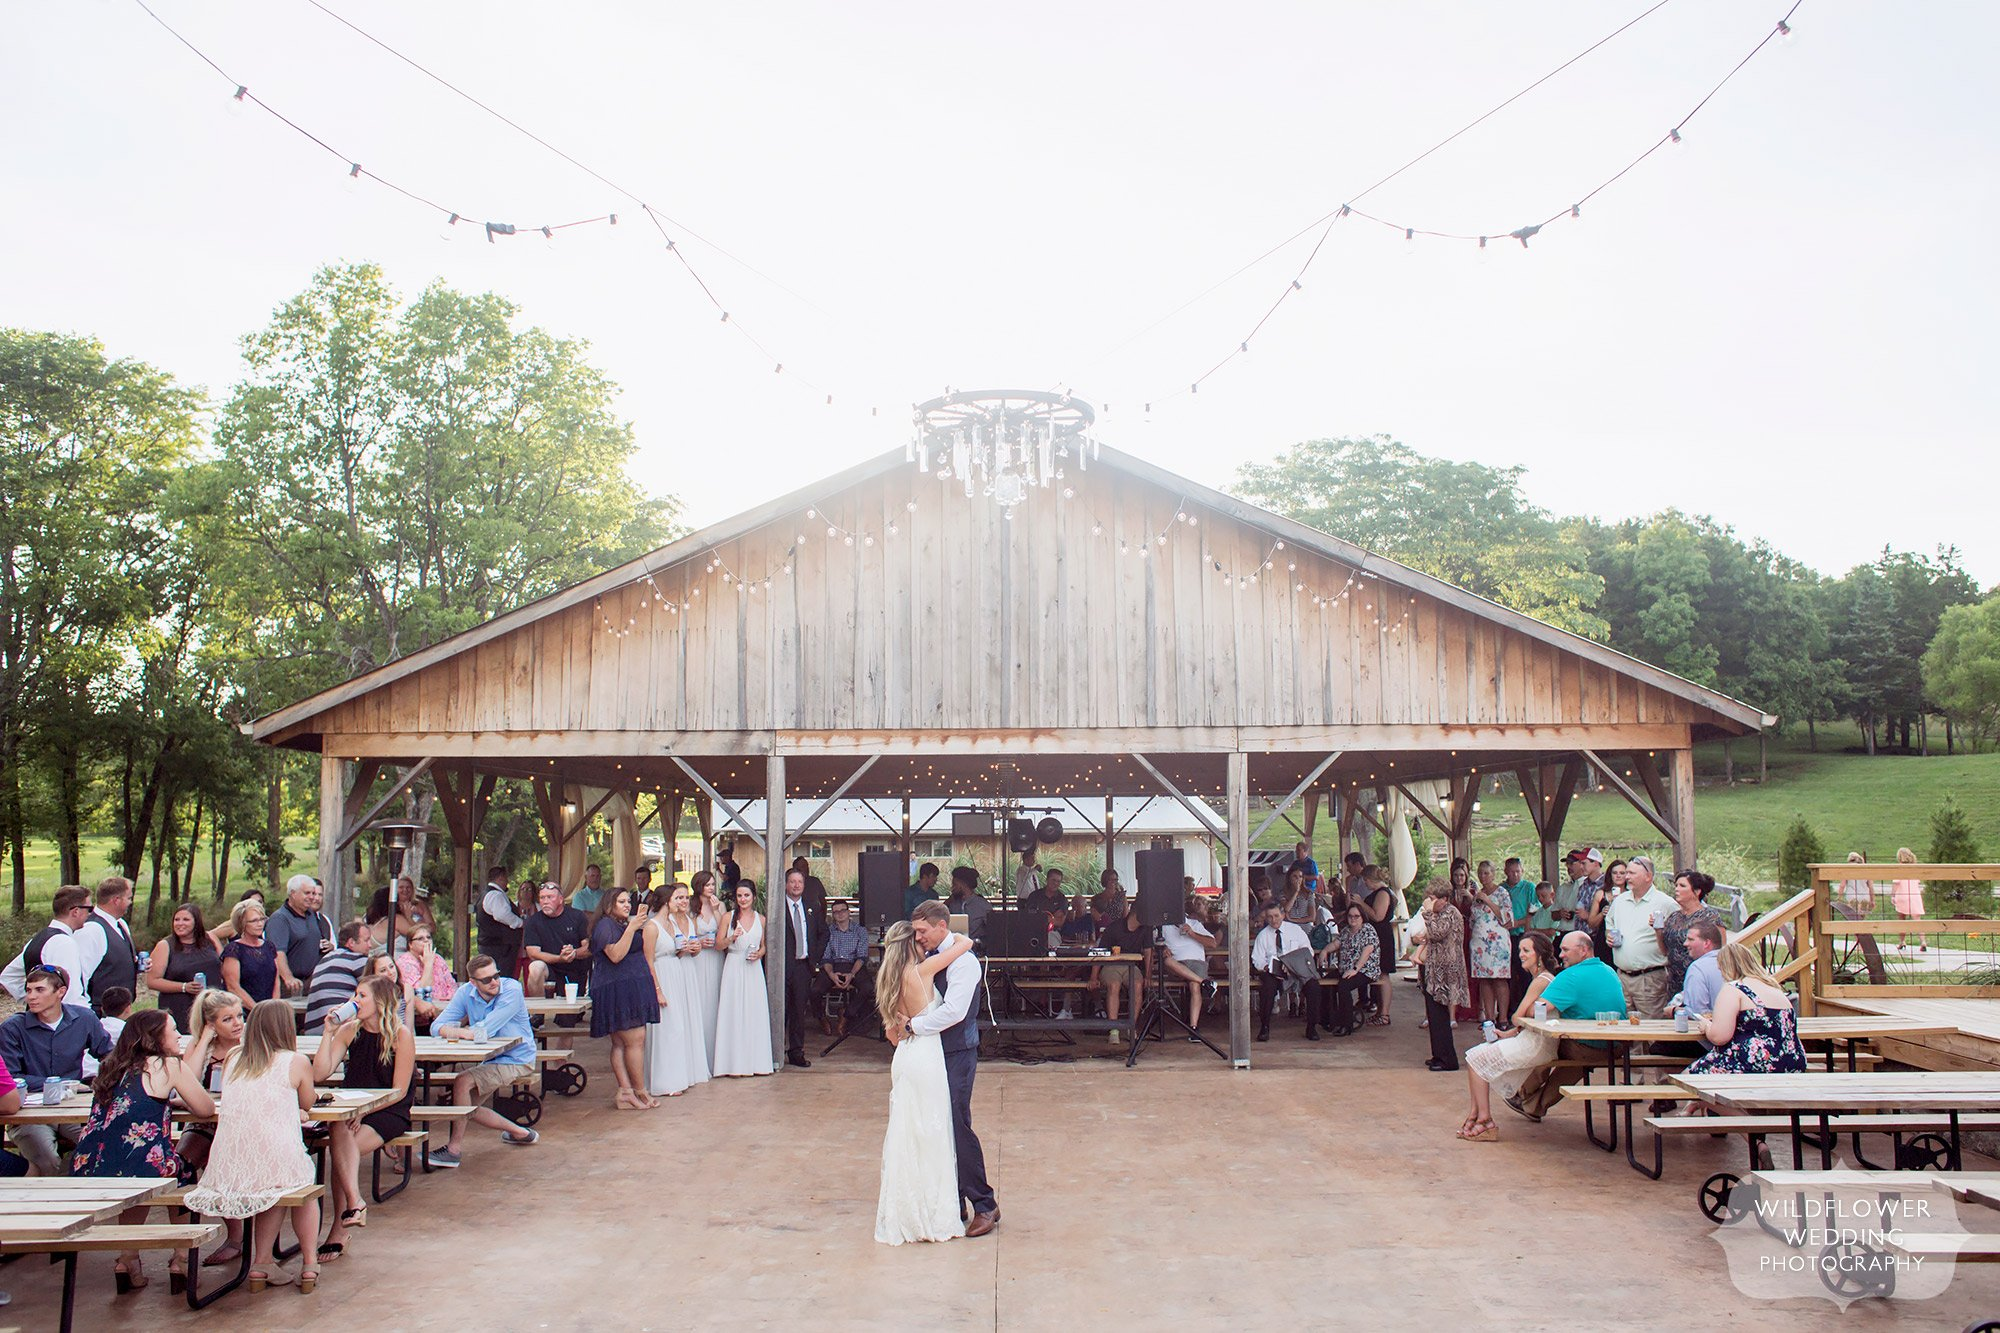 The bride and groom have their first dance outside under a canopy of twinkle lights at this barn wedding venue in Westphalia, MO.